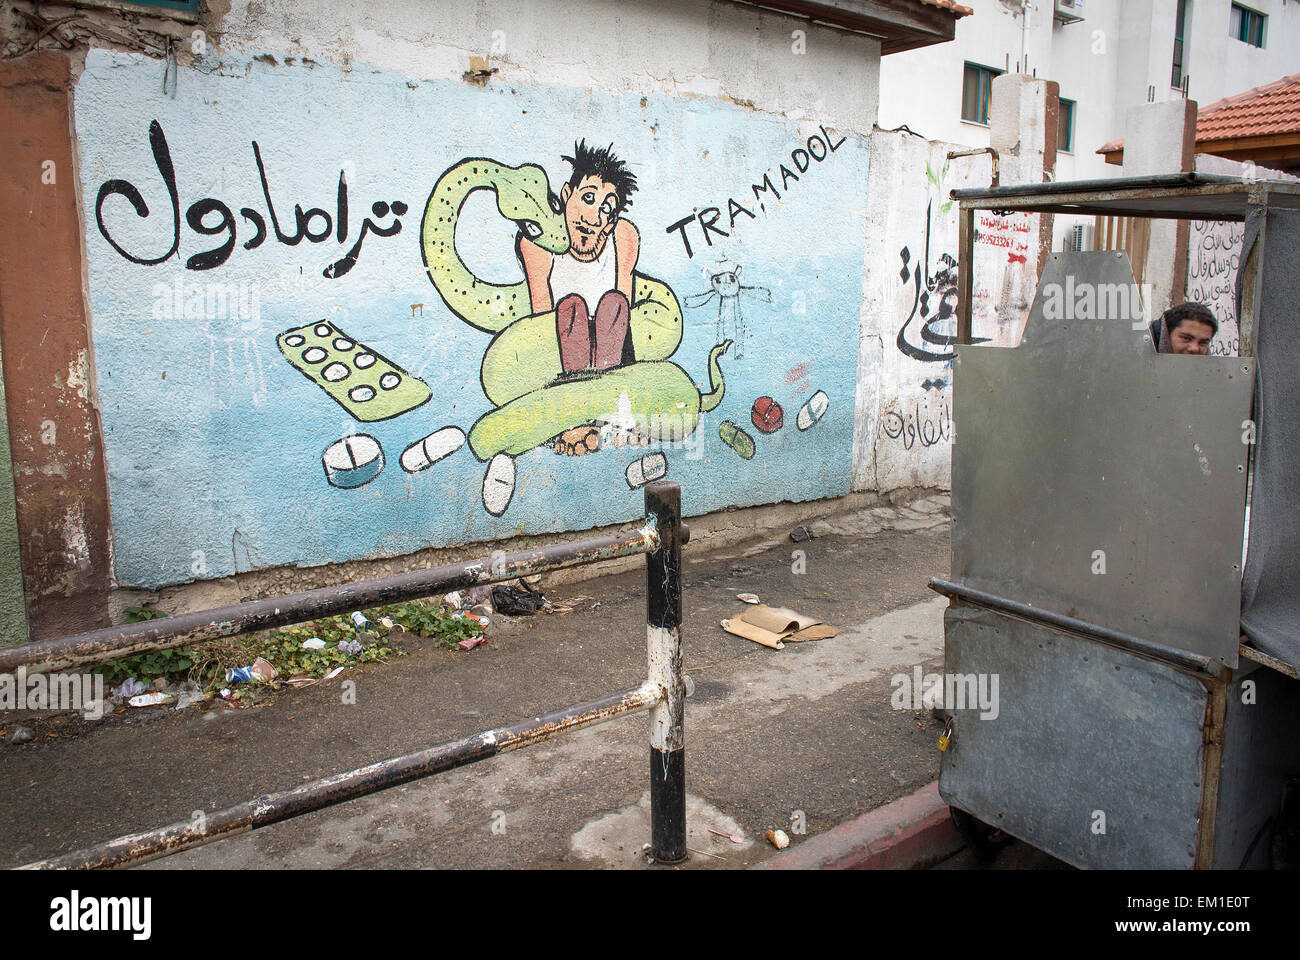 Street graffiti warning against abuse and use of the drug Tramadol in the Gaza Strip, occupied Palestinian territories. - Stock Image